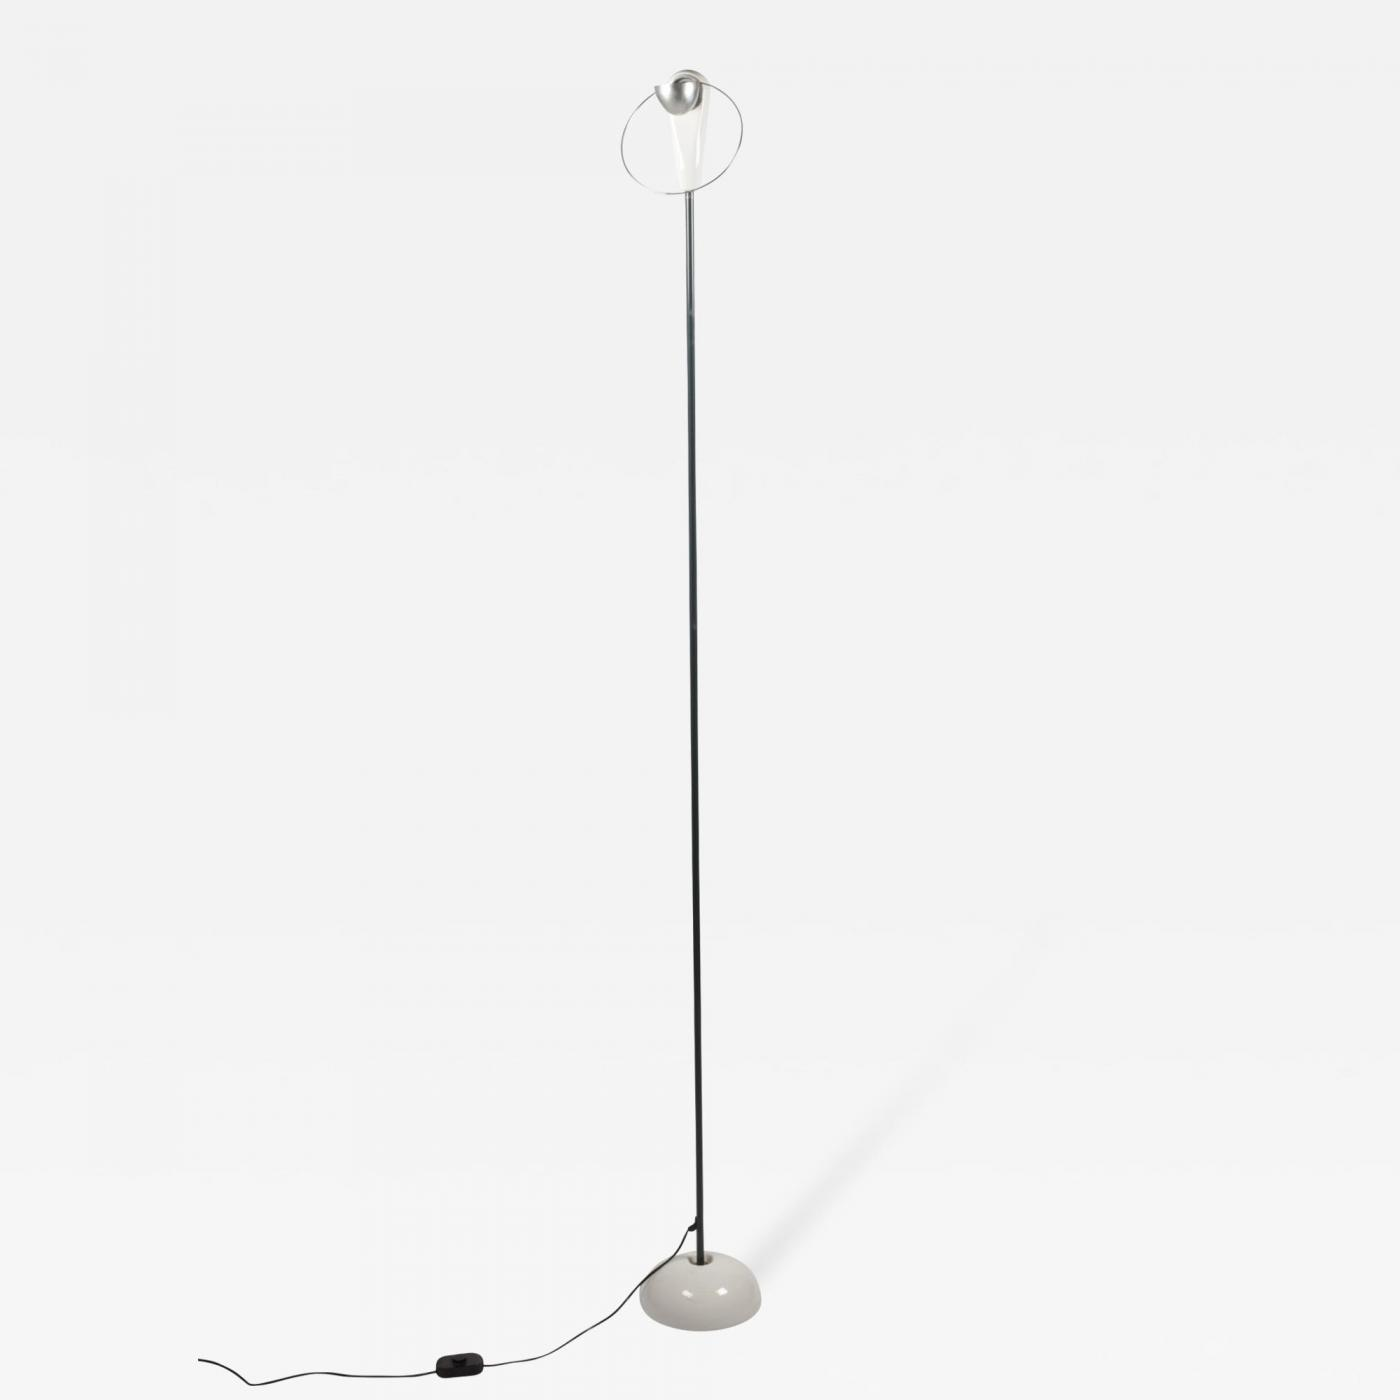 Achille castiglioni bibip floor lamp by achille castiglioni for flos listings furniture lighting floor lamps mozeypictures Choice Image